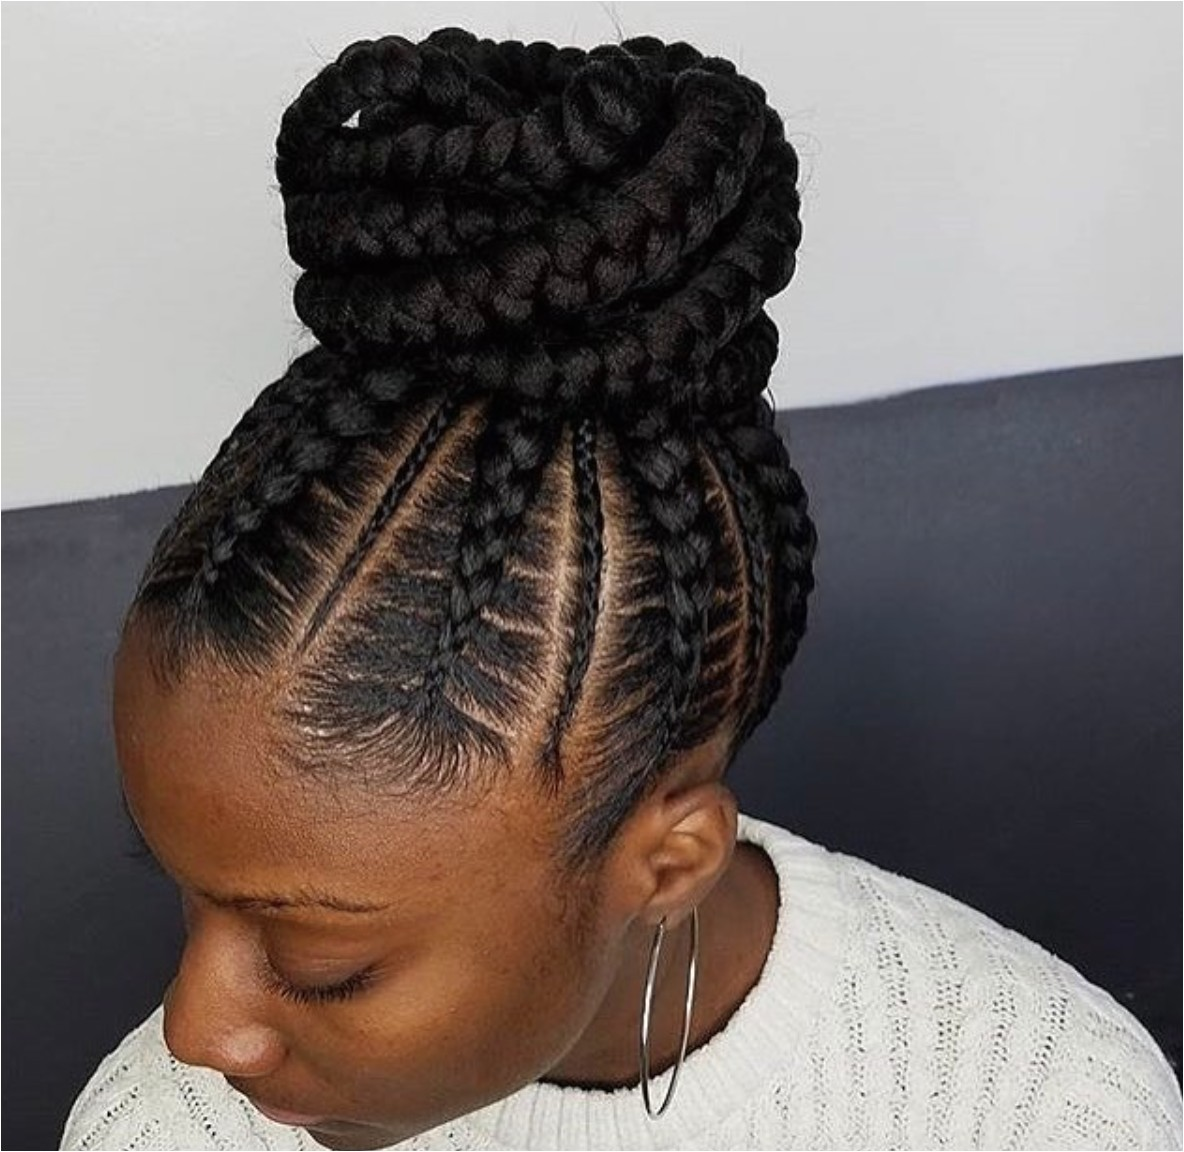 Asian new hairstyle 2014 women hairstyles long cute ponytails pixie hairstyles tutorial cornrows hairstyles faces hairstyles 2016 bob styles bun hairstyle